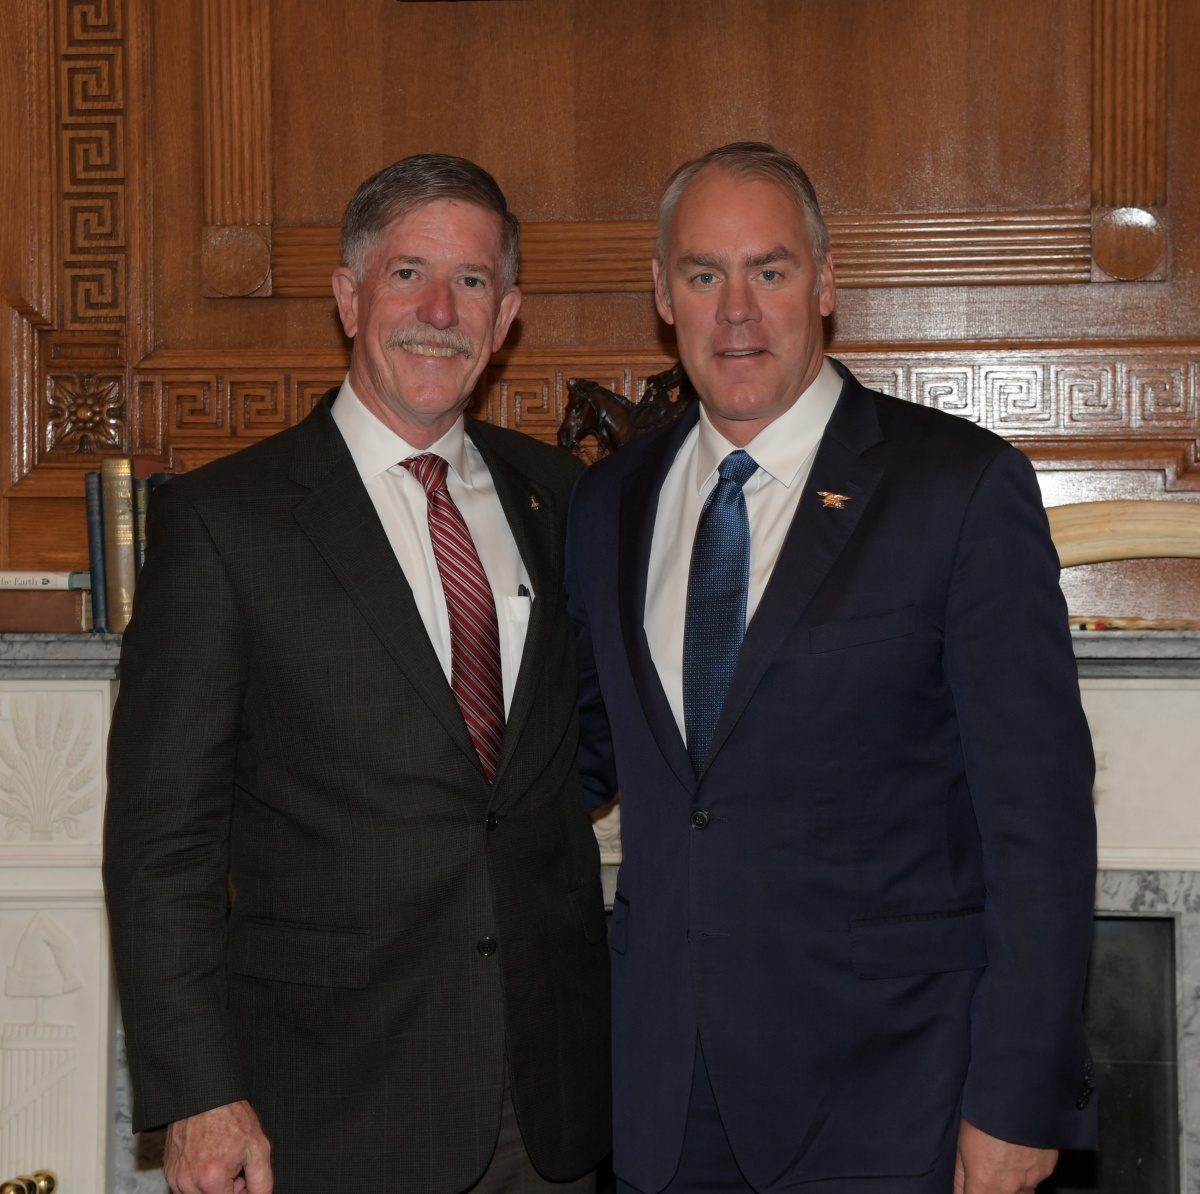 Secretary Zinke and Jim Reilly, both tall white men with gray hair wearing suits, pose together in a wood paneled office.